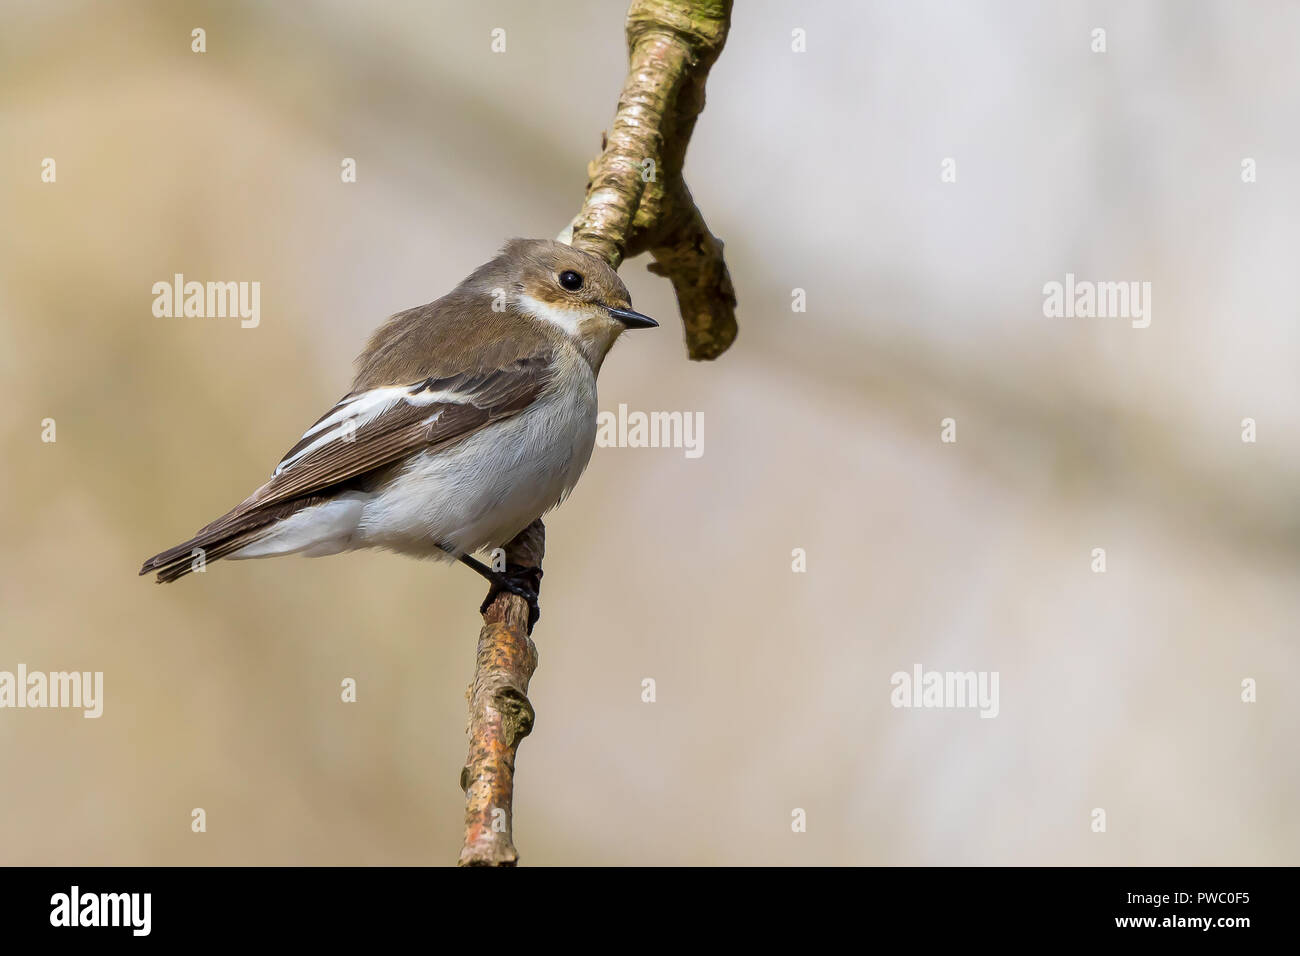 Detailed, landscape close up of a single, adult female pied flycatcher (ficedula hypoleuca) perched on a vertical twig, against soft-focus background. - Stock Image